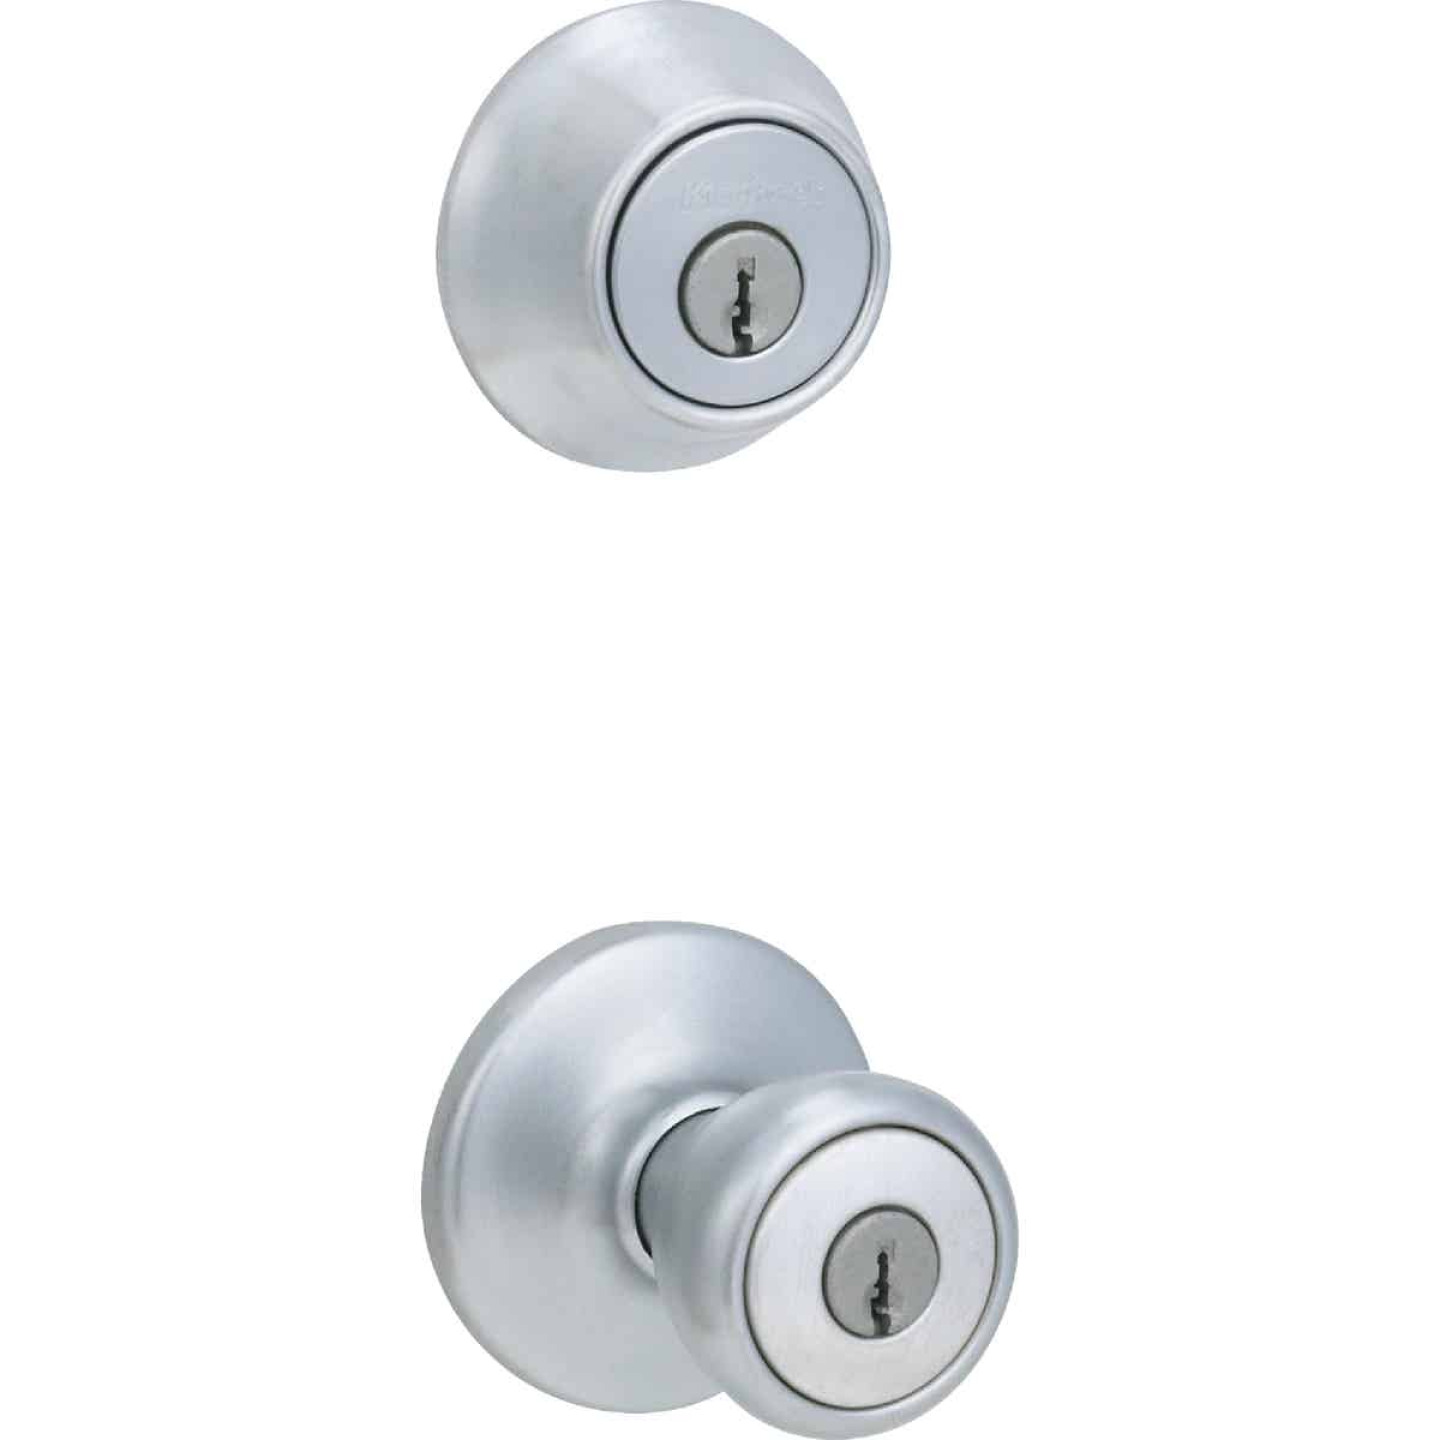 Kwikset Satin Chrome Deadbolt and Door Knob Combo Image 1